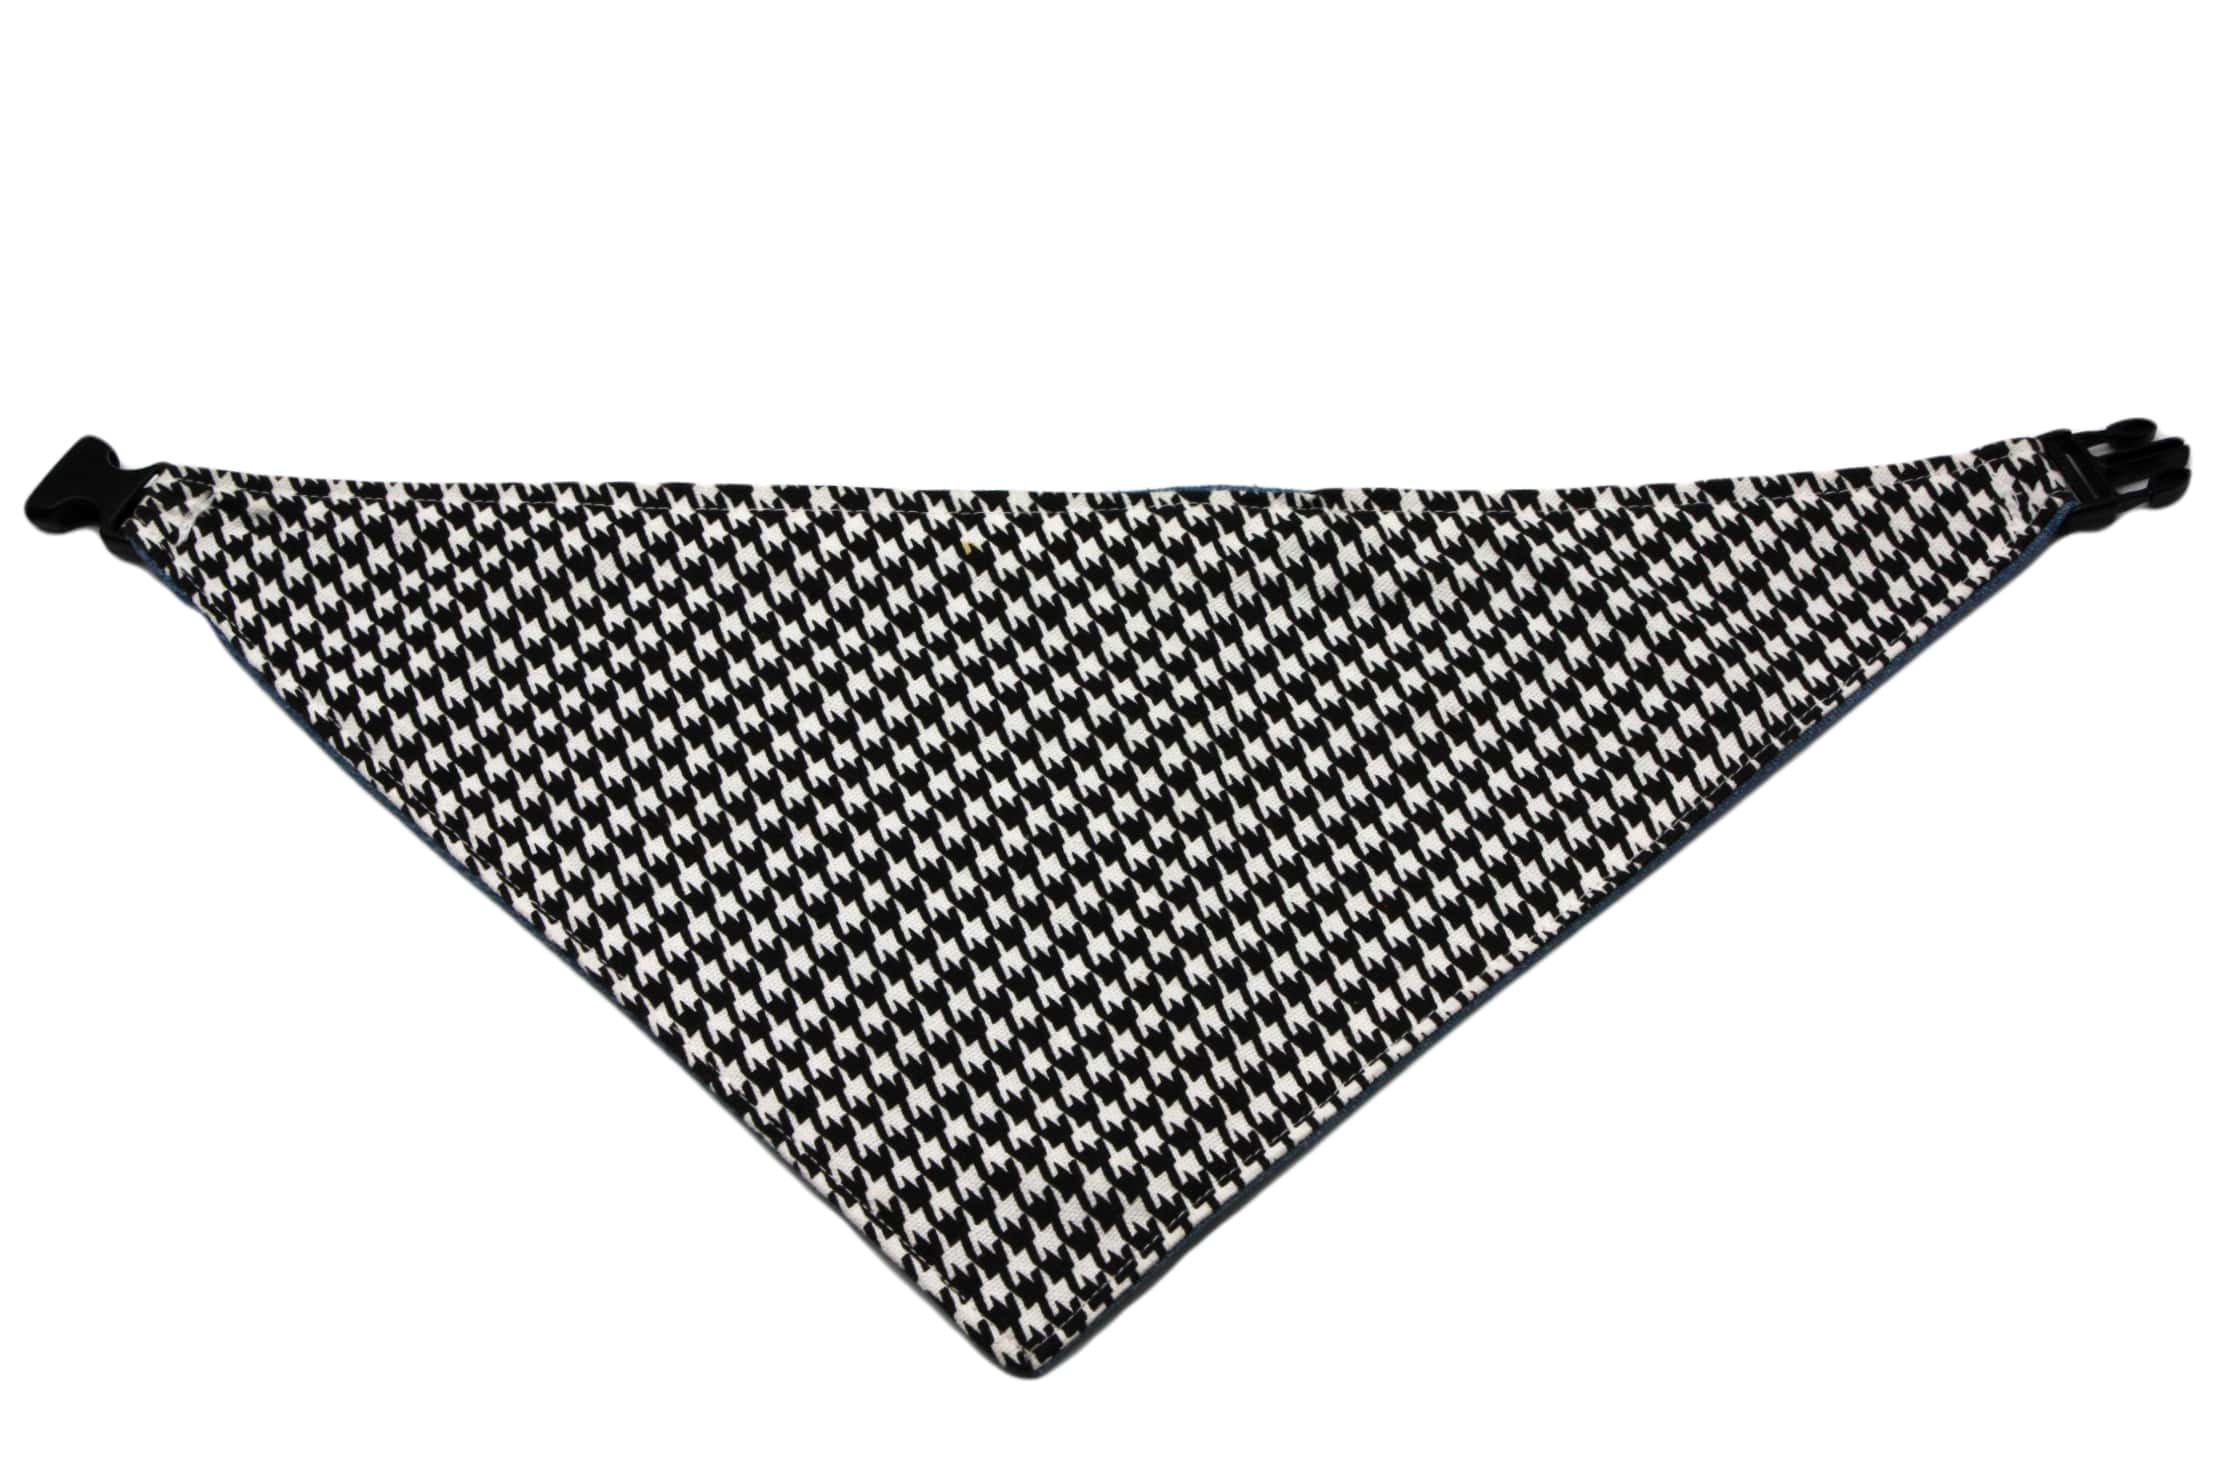 Uptown Pups Reversible Bandana - Black Houndstooth and Denim